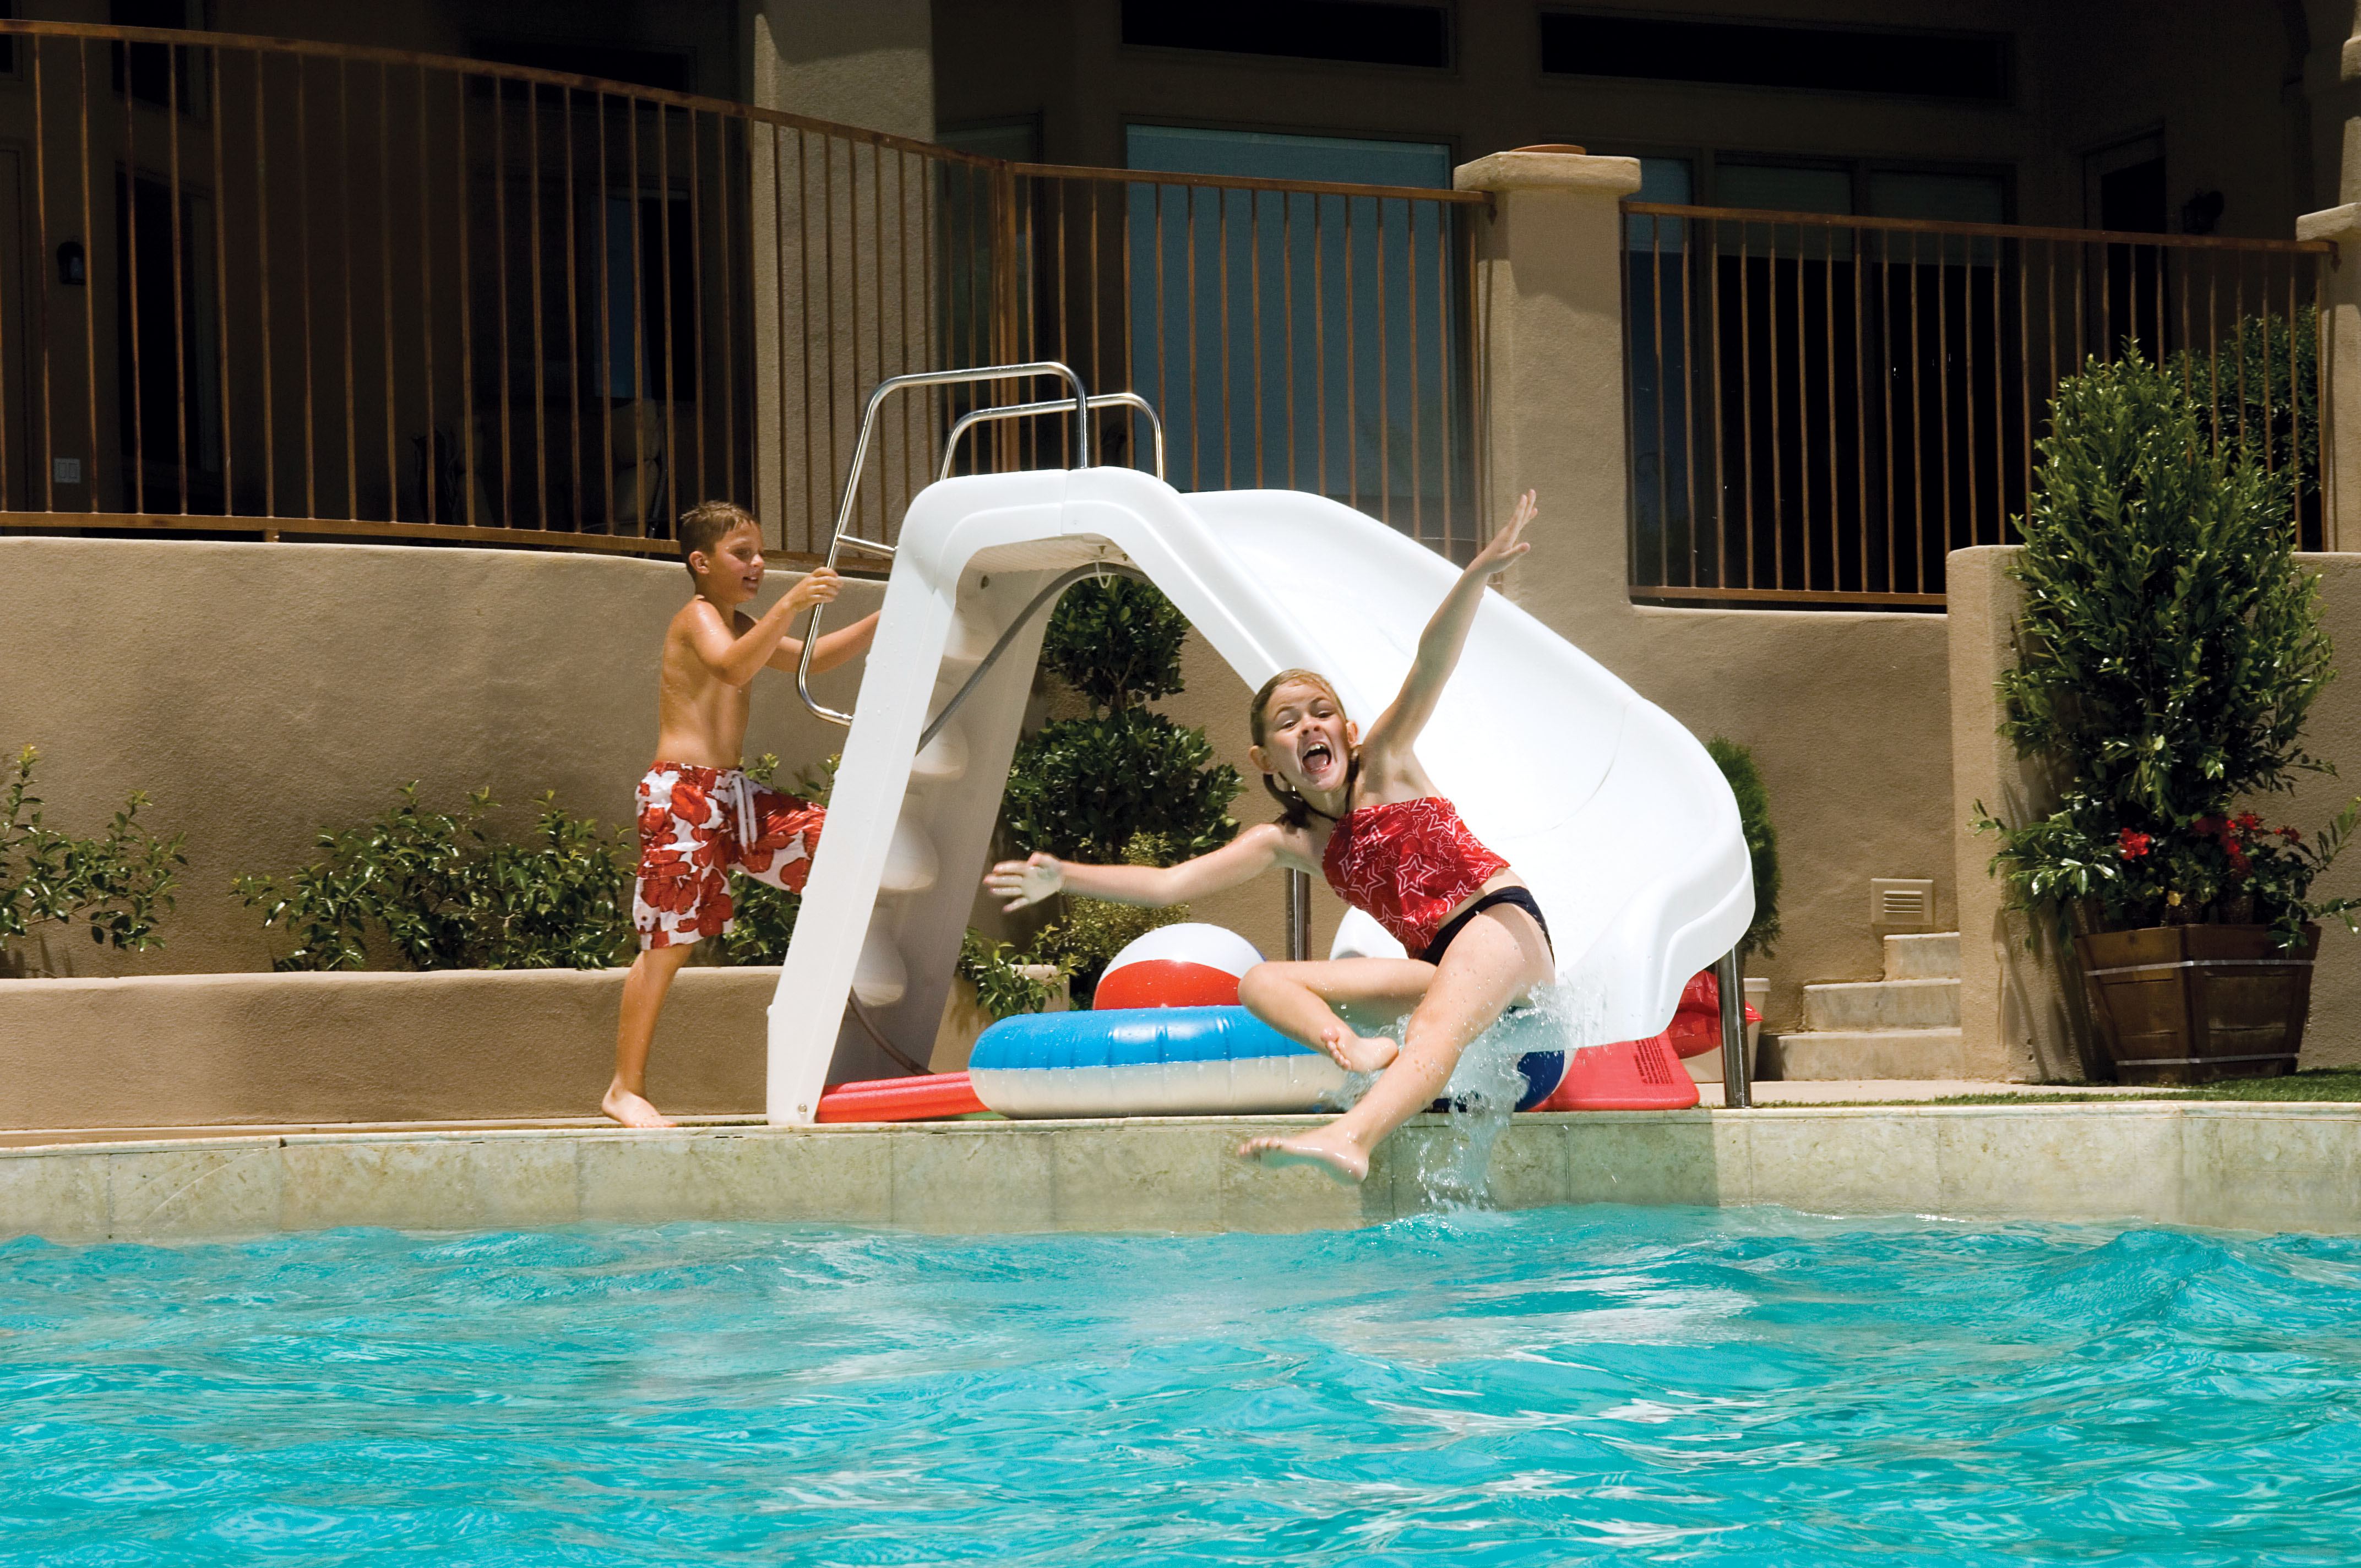 Fun in the sun with modern pool toys and slides SPLASH Magazine